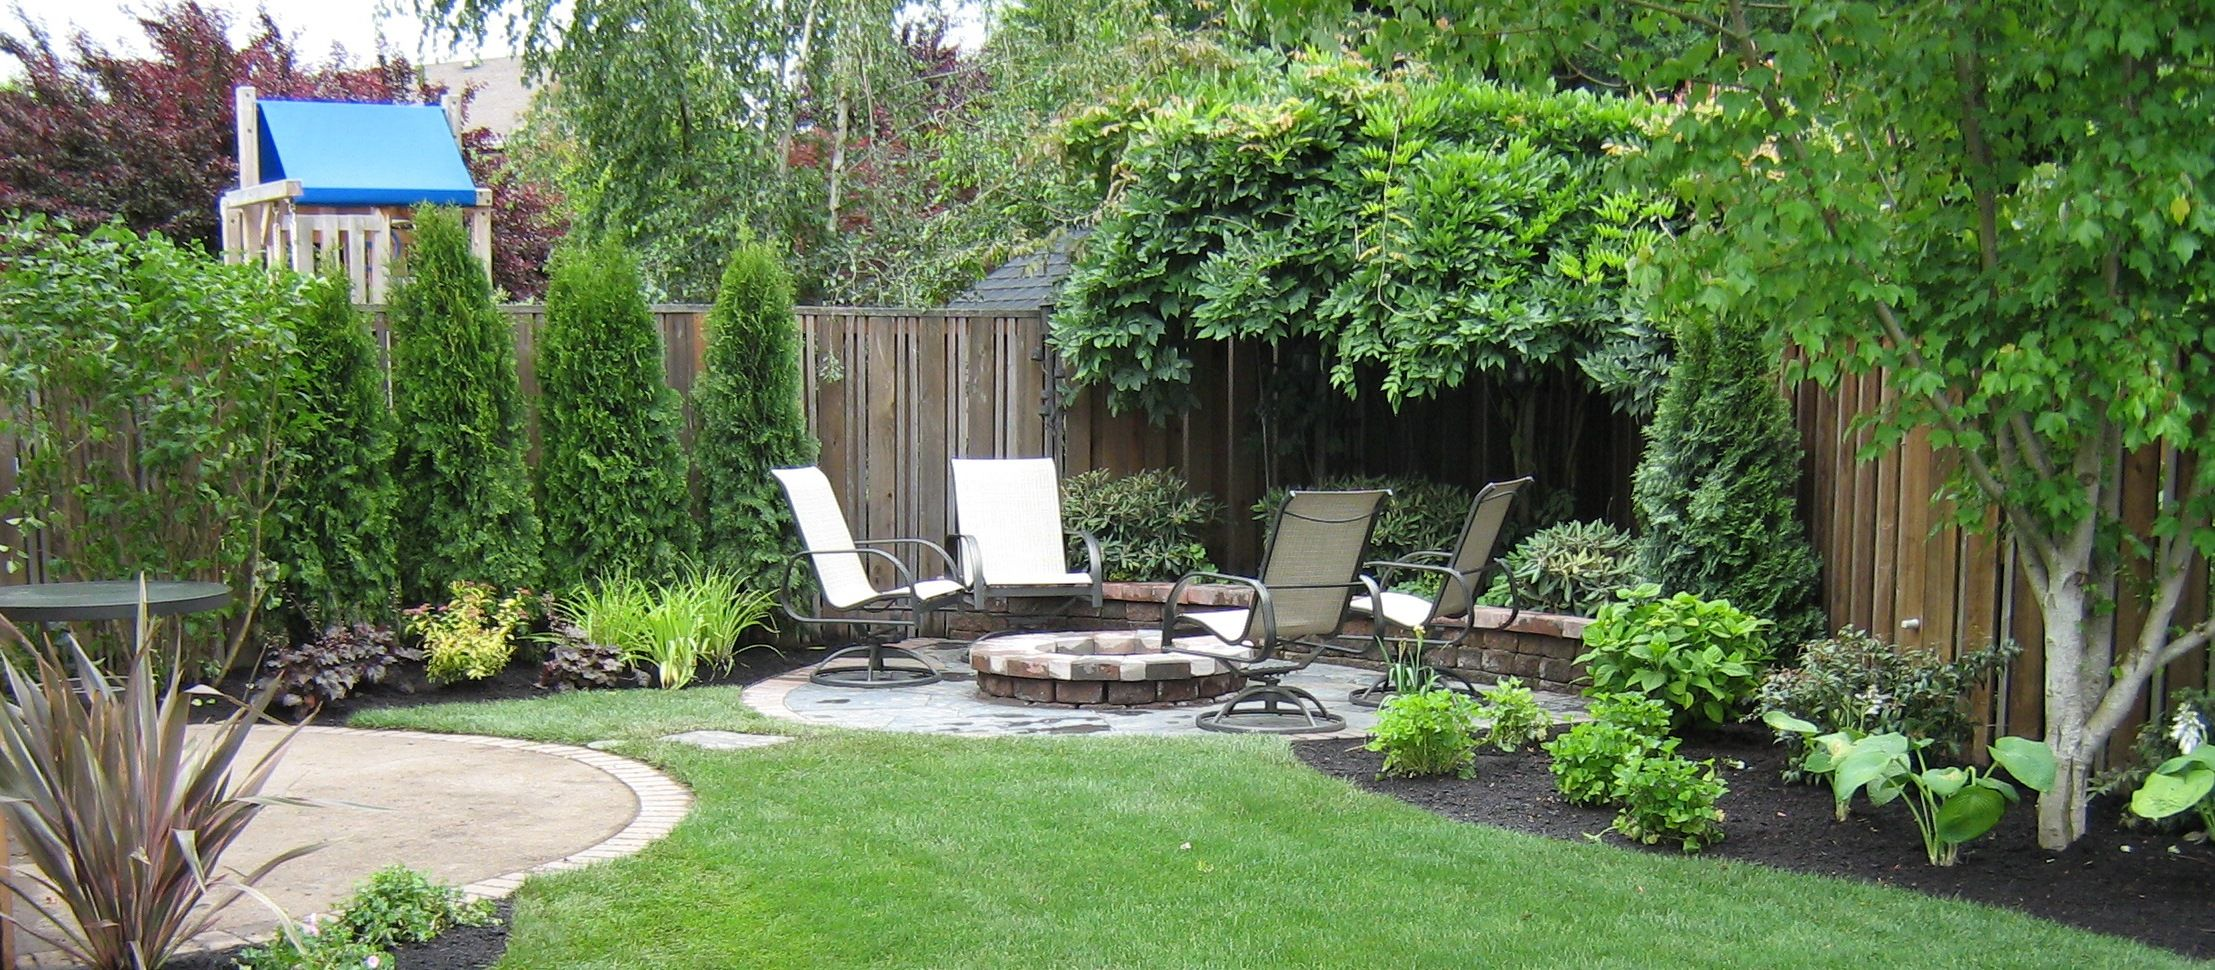 Small backyard landscaping ideas photos garden design for Small beautiful gardens ideas